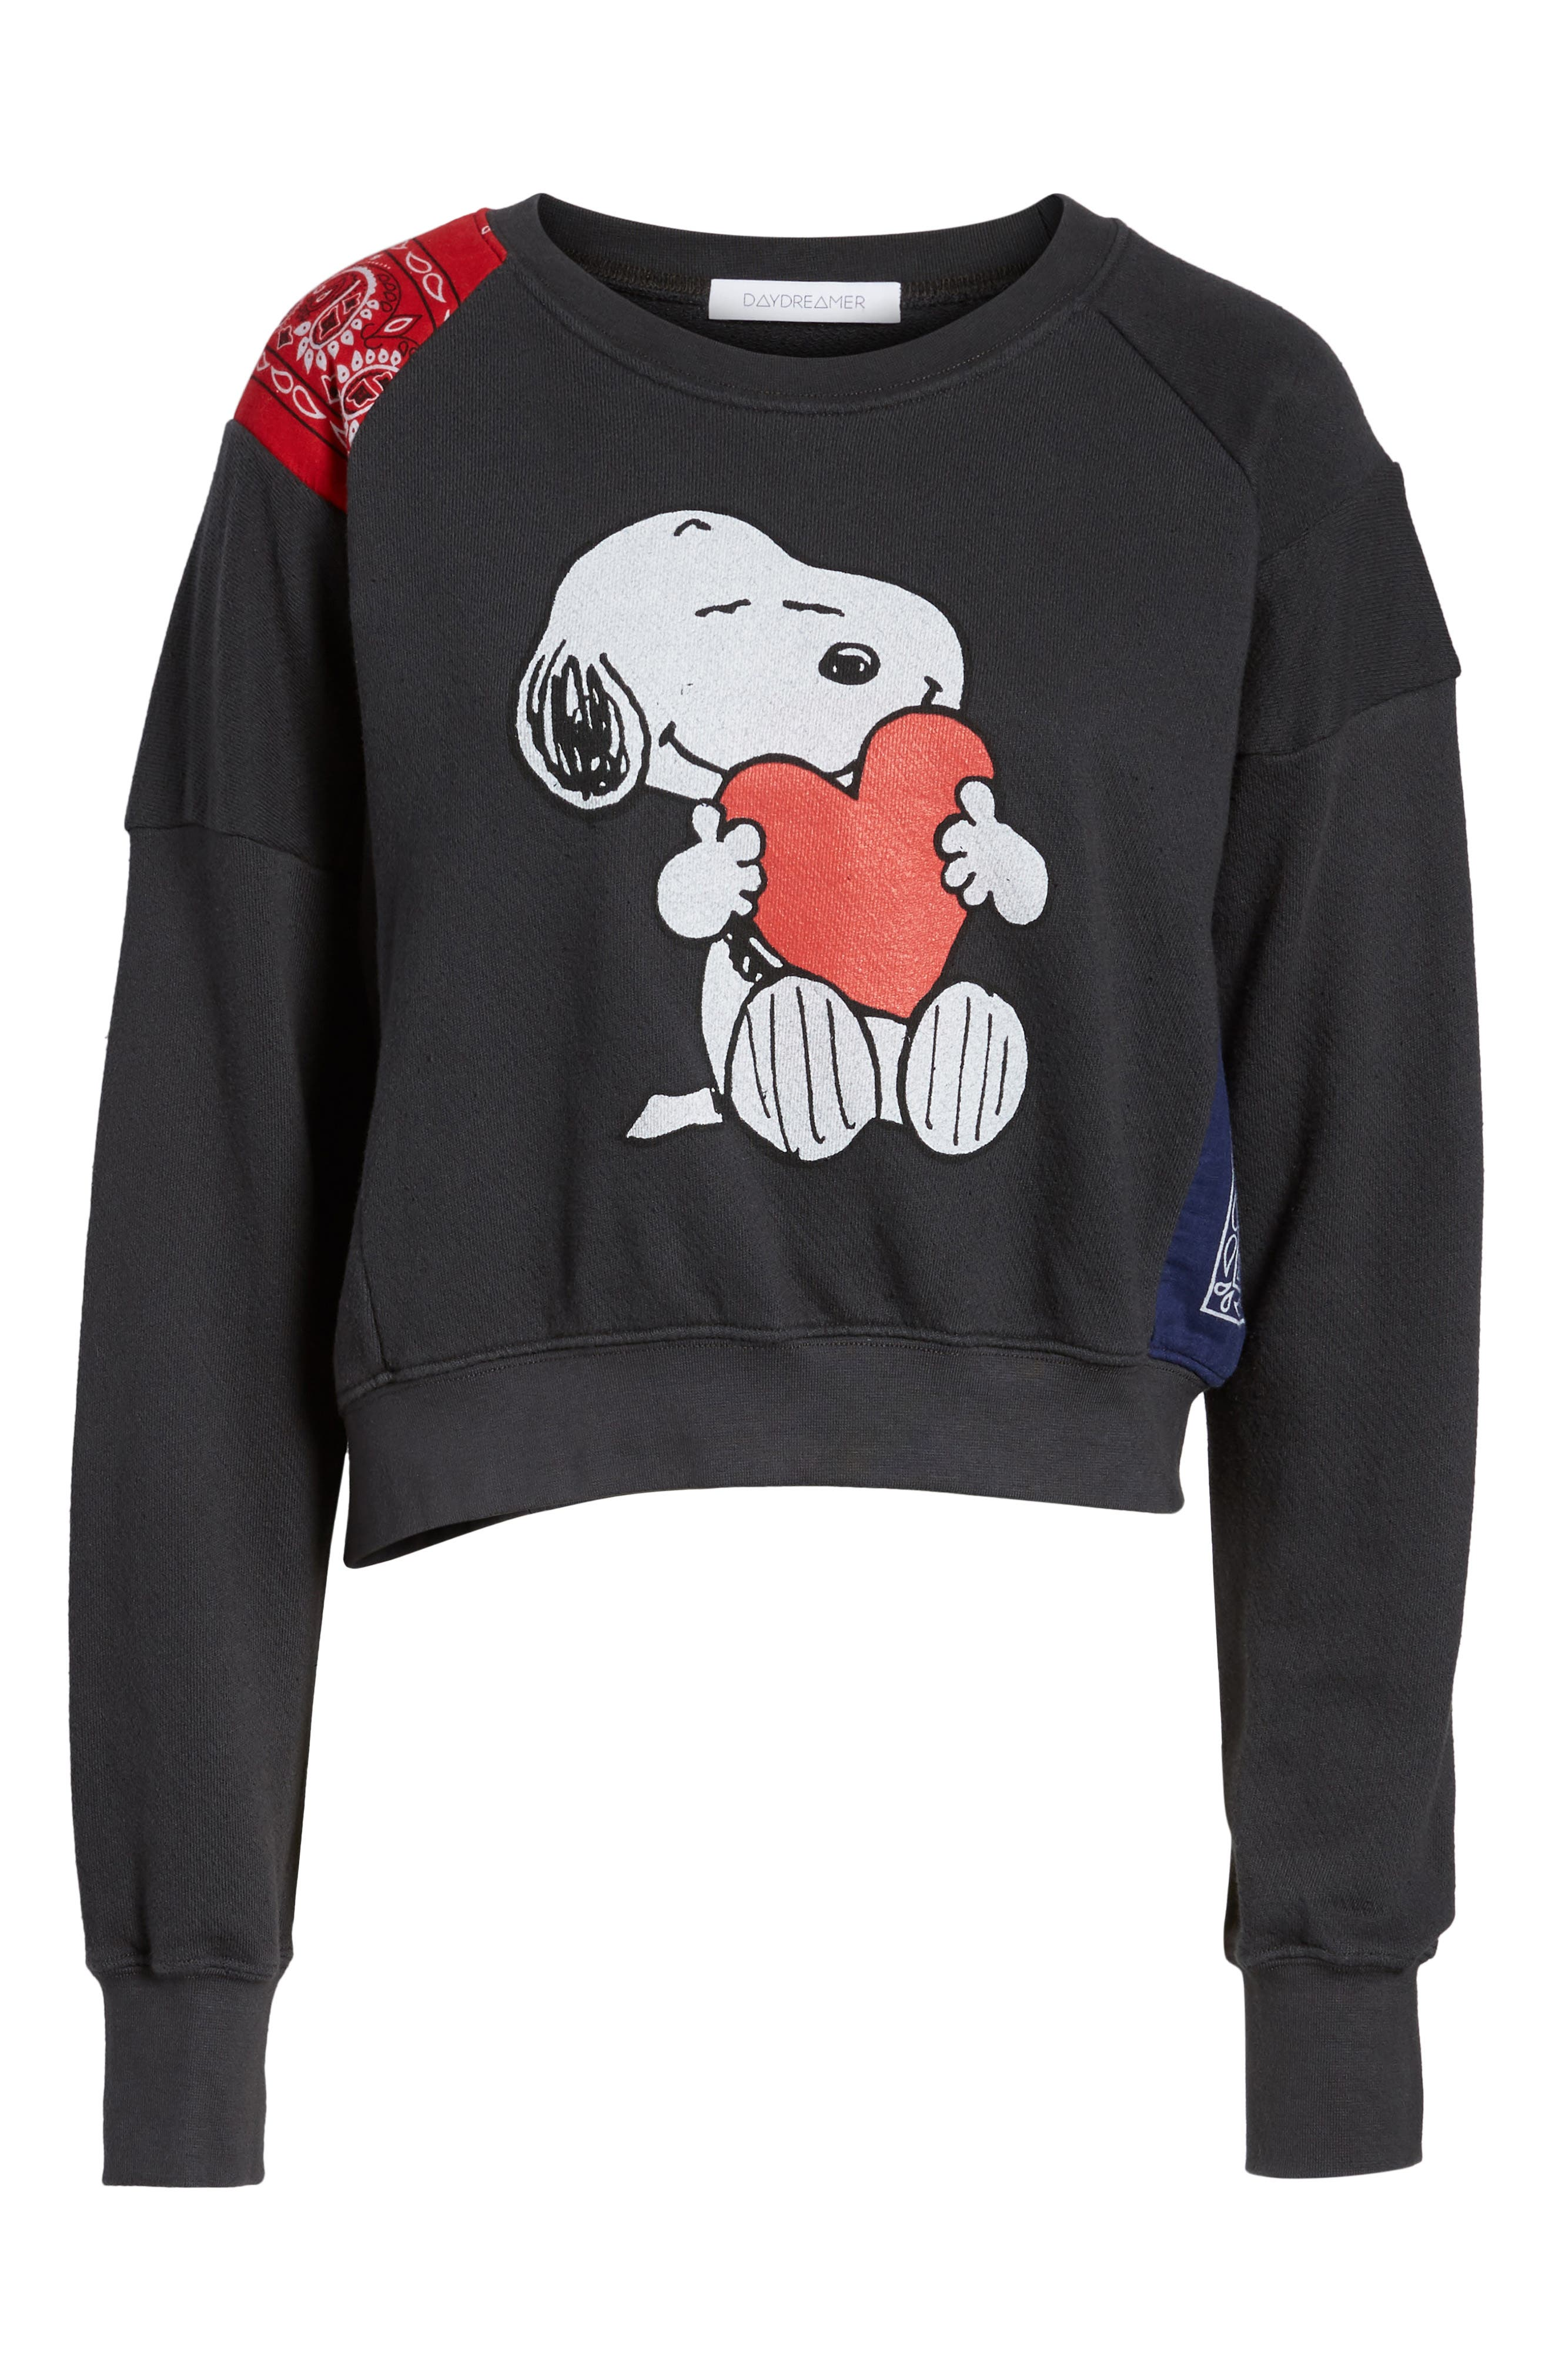 Alternate Image 1 Selected - Daydreamer Snoopy Bandana Panel Sweatshirt (Limited Edition) (Nordstrom Exclusive)